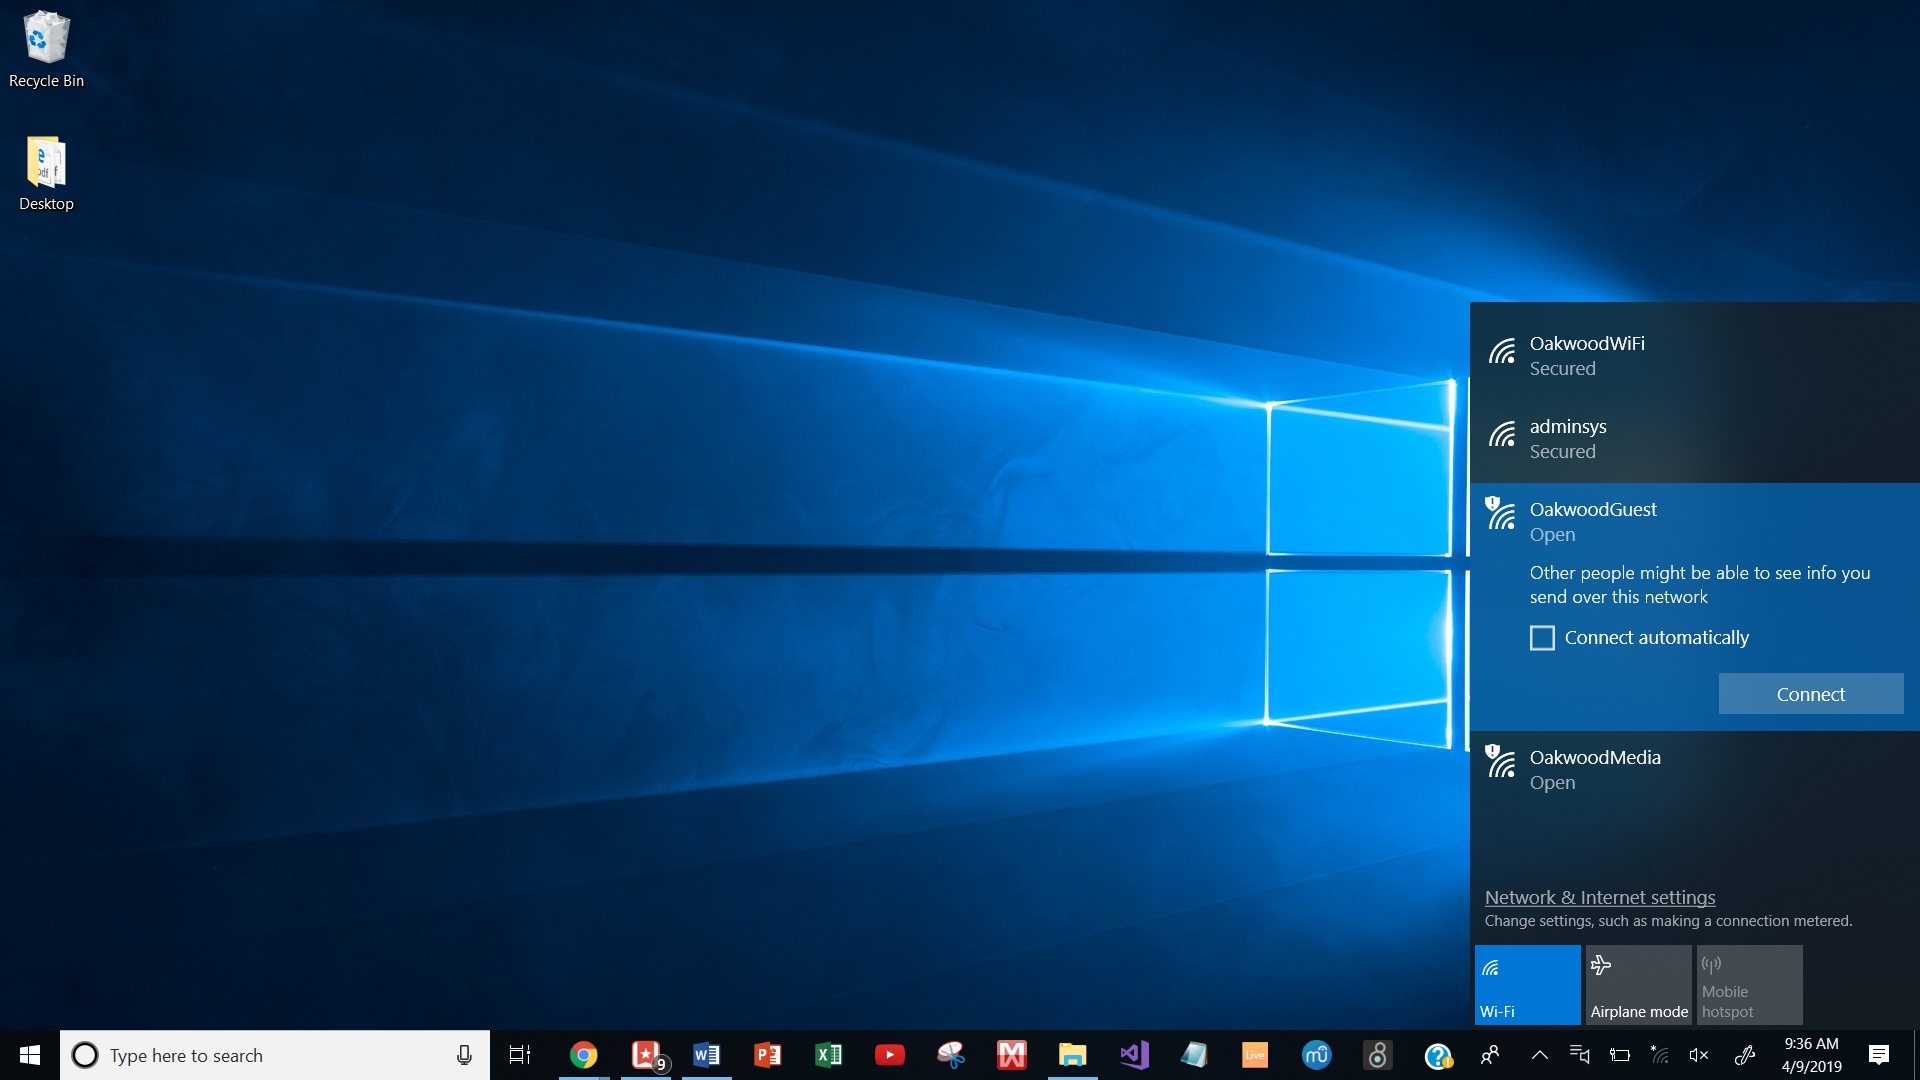 How to connect to the Guest network on Windows 10 : Oakwood